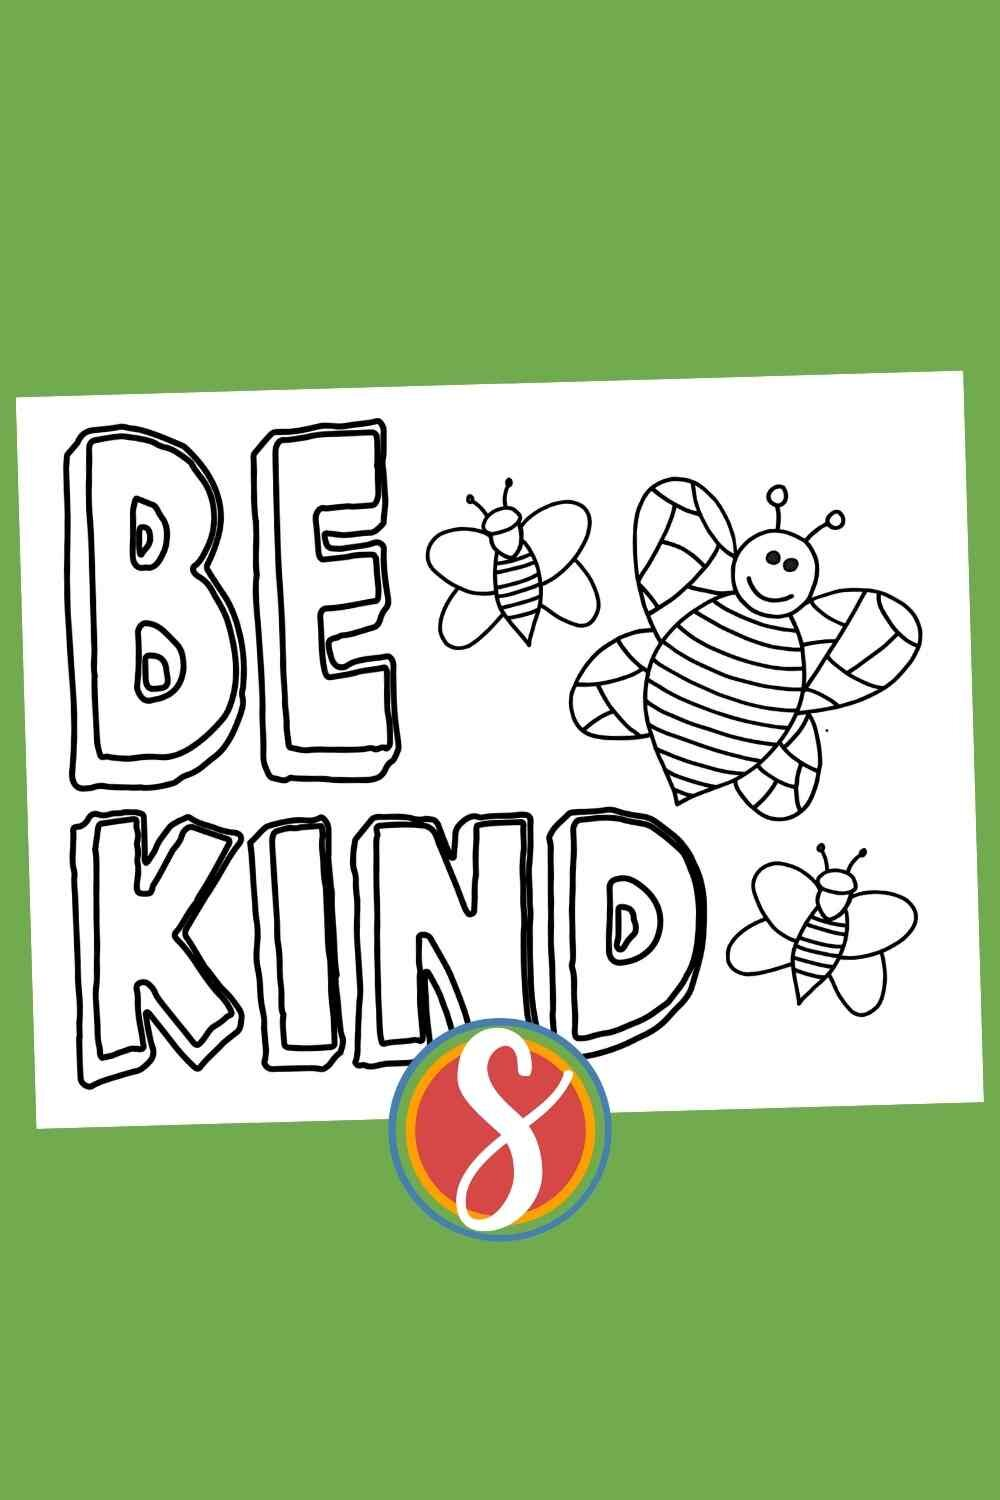 """free printable bee coloring pages with three cute bees to color and the colorable words """"Be Kind"""" - tons of free bees coloring pages to print and color from Stevie Doodles"""